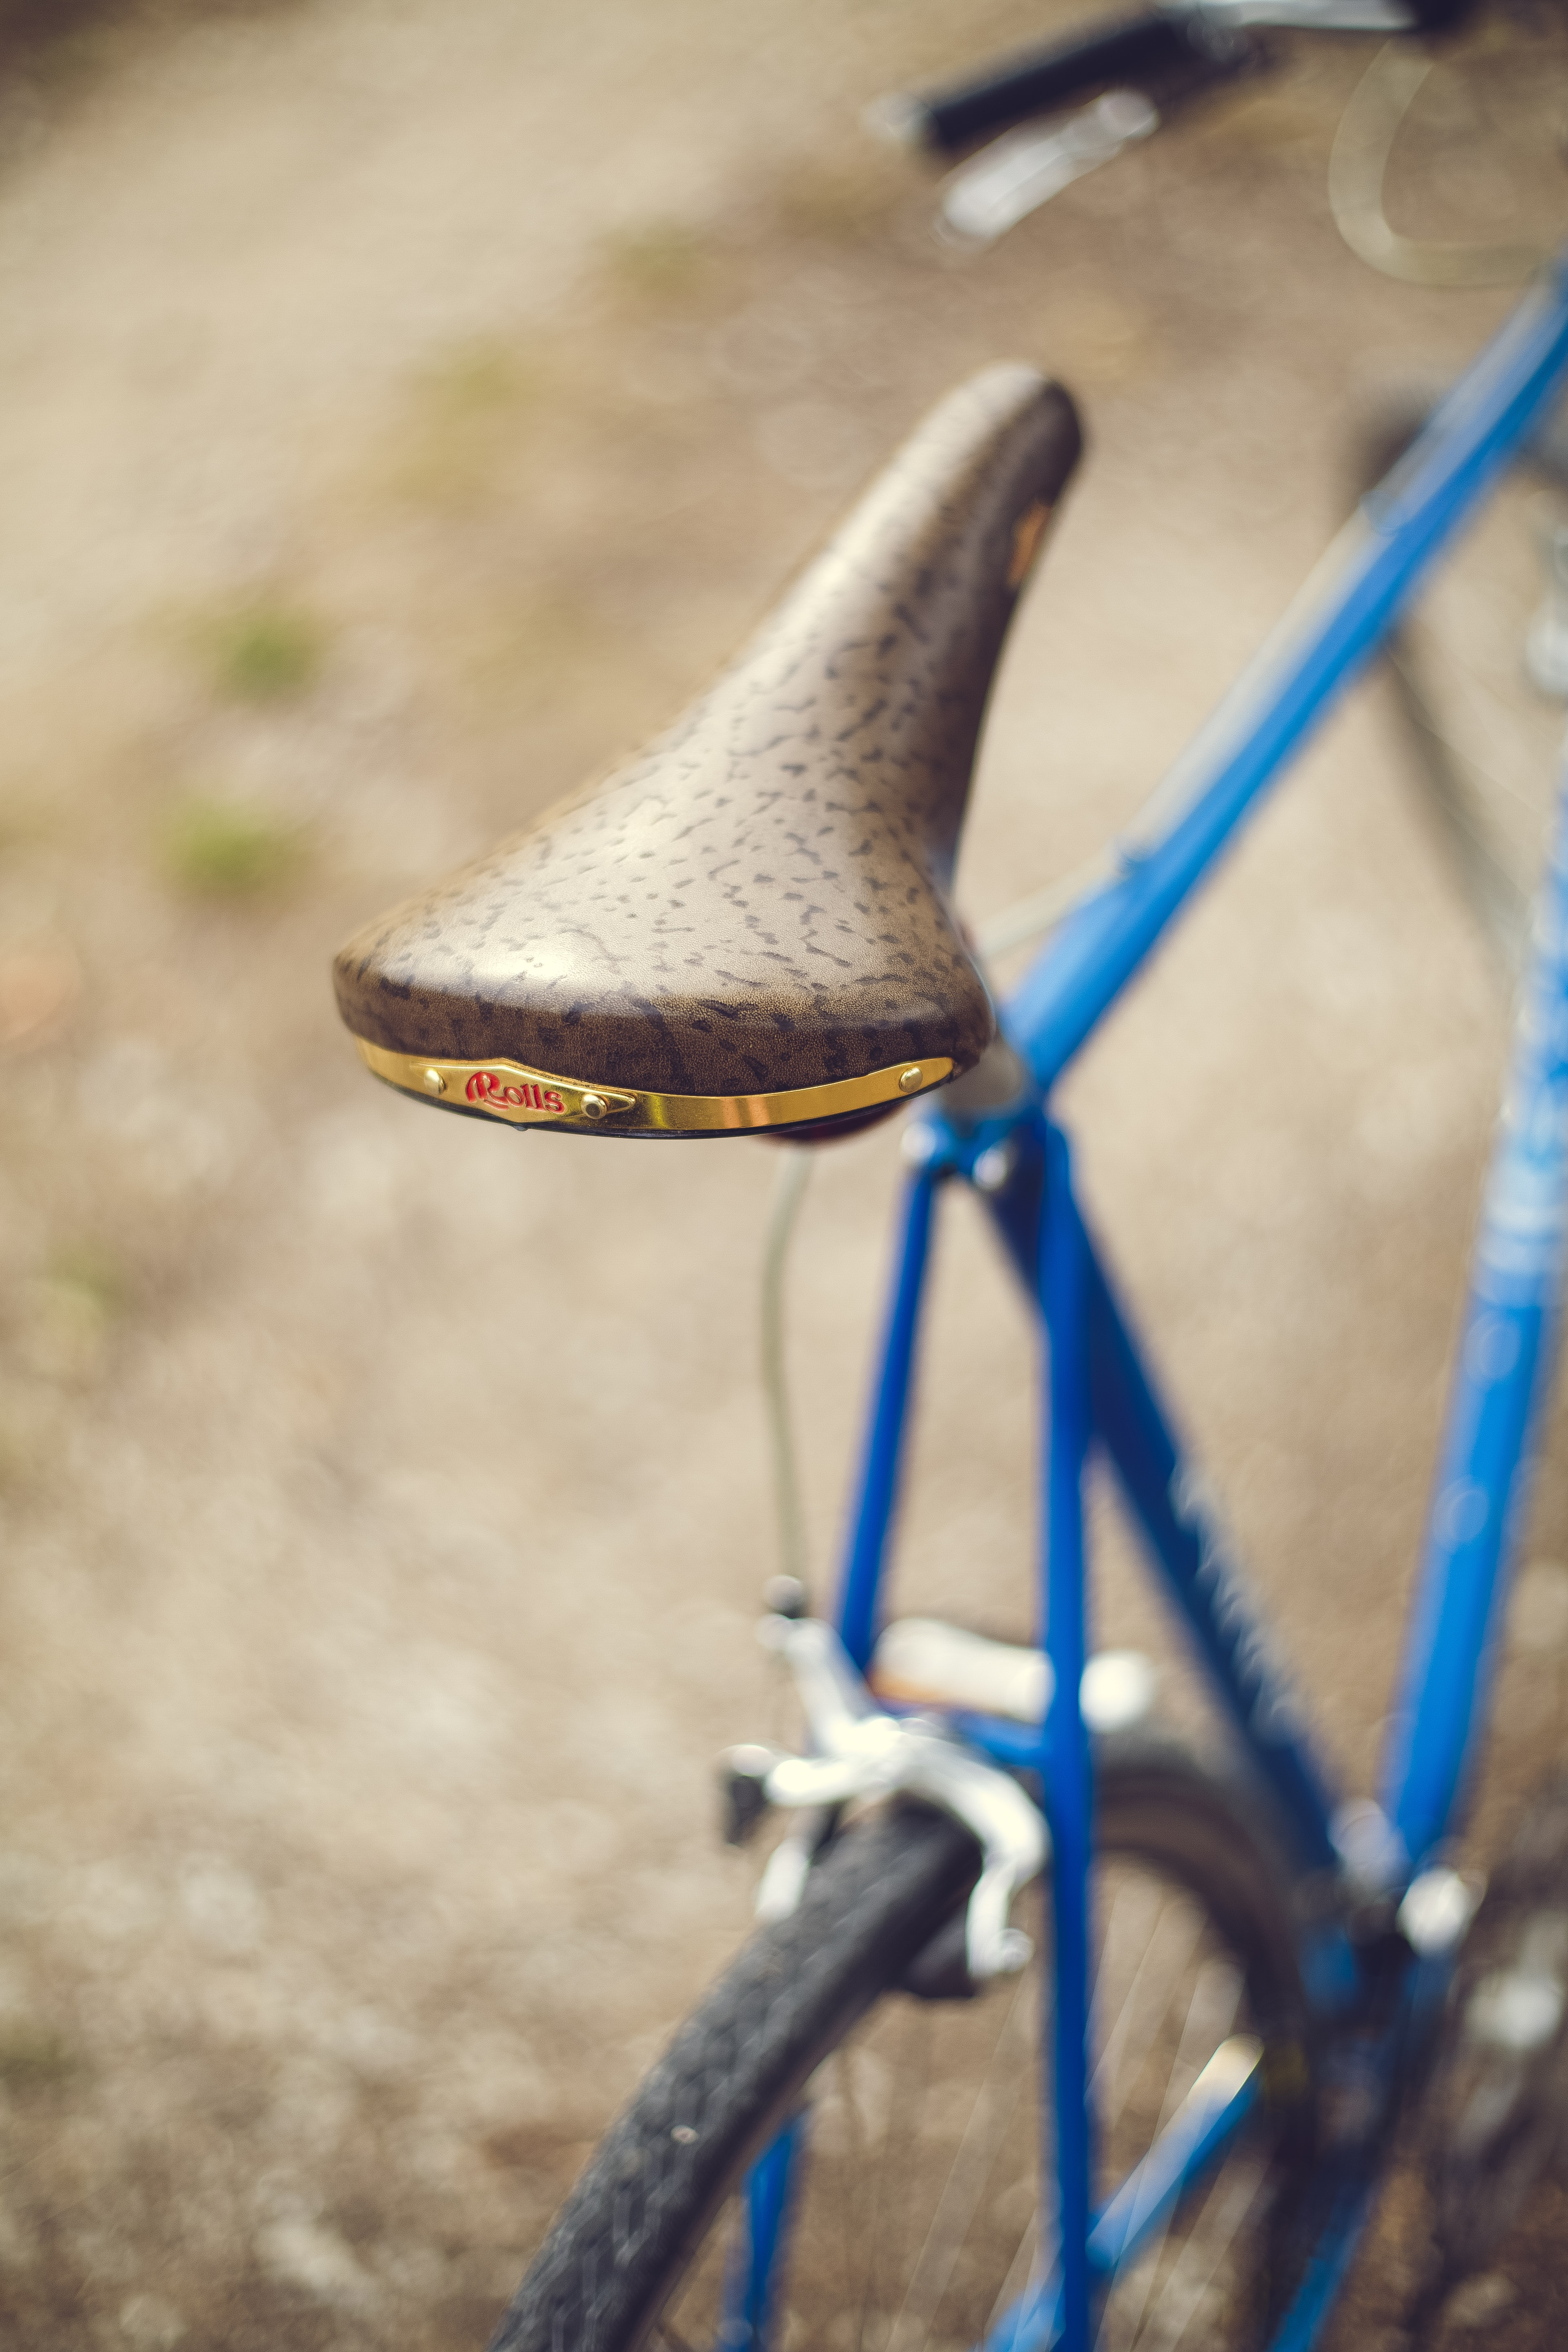 selective focus photography of gray bicycle seat